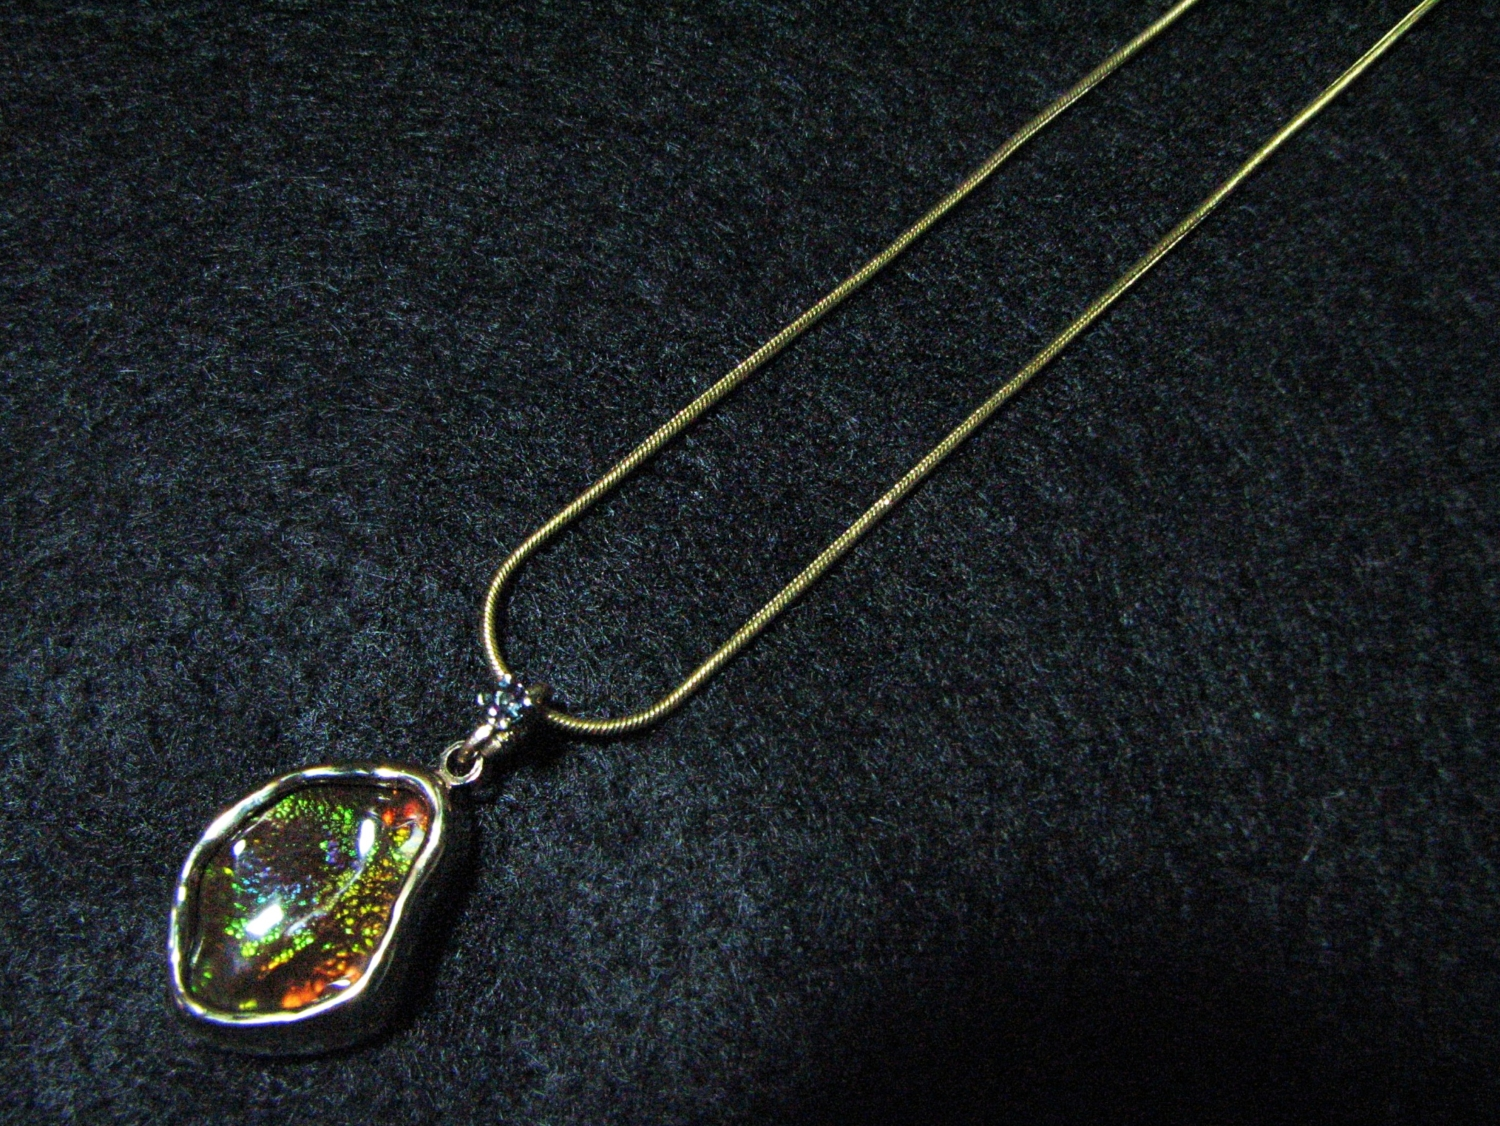 Fire Agate and Alexandrite necklace